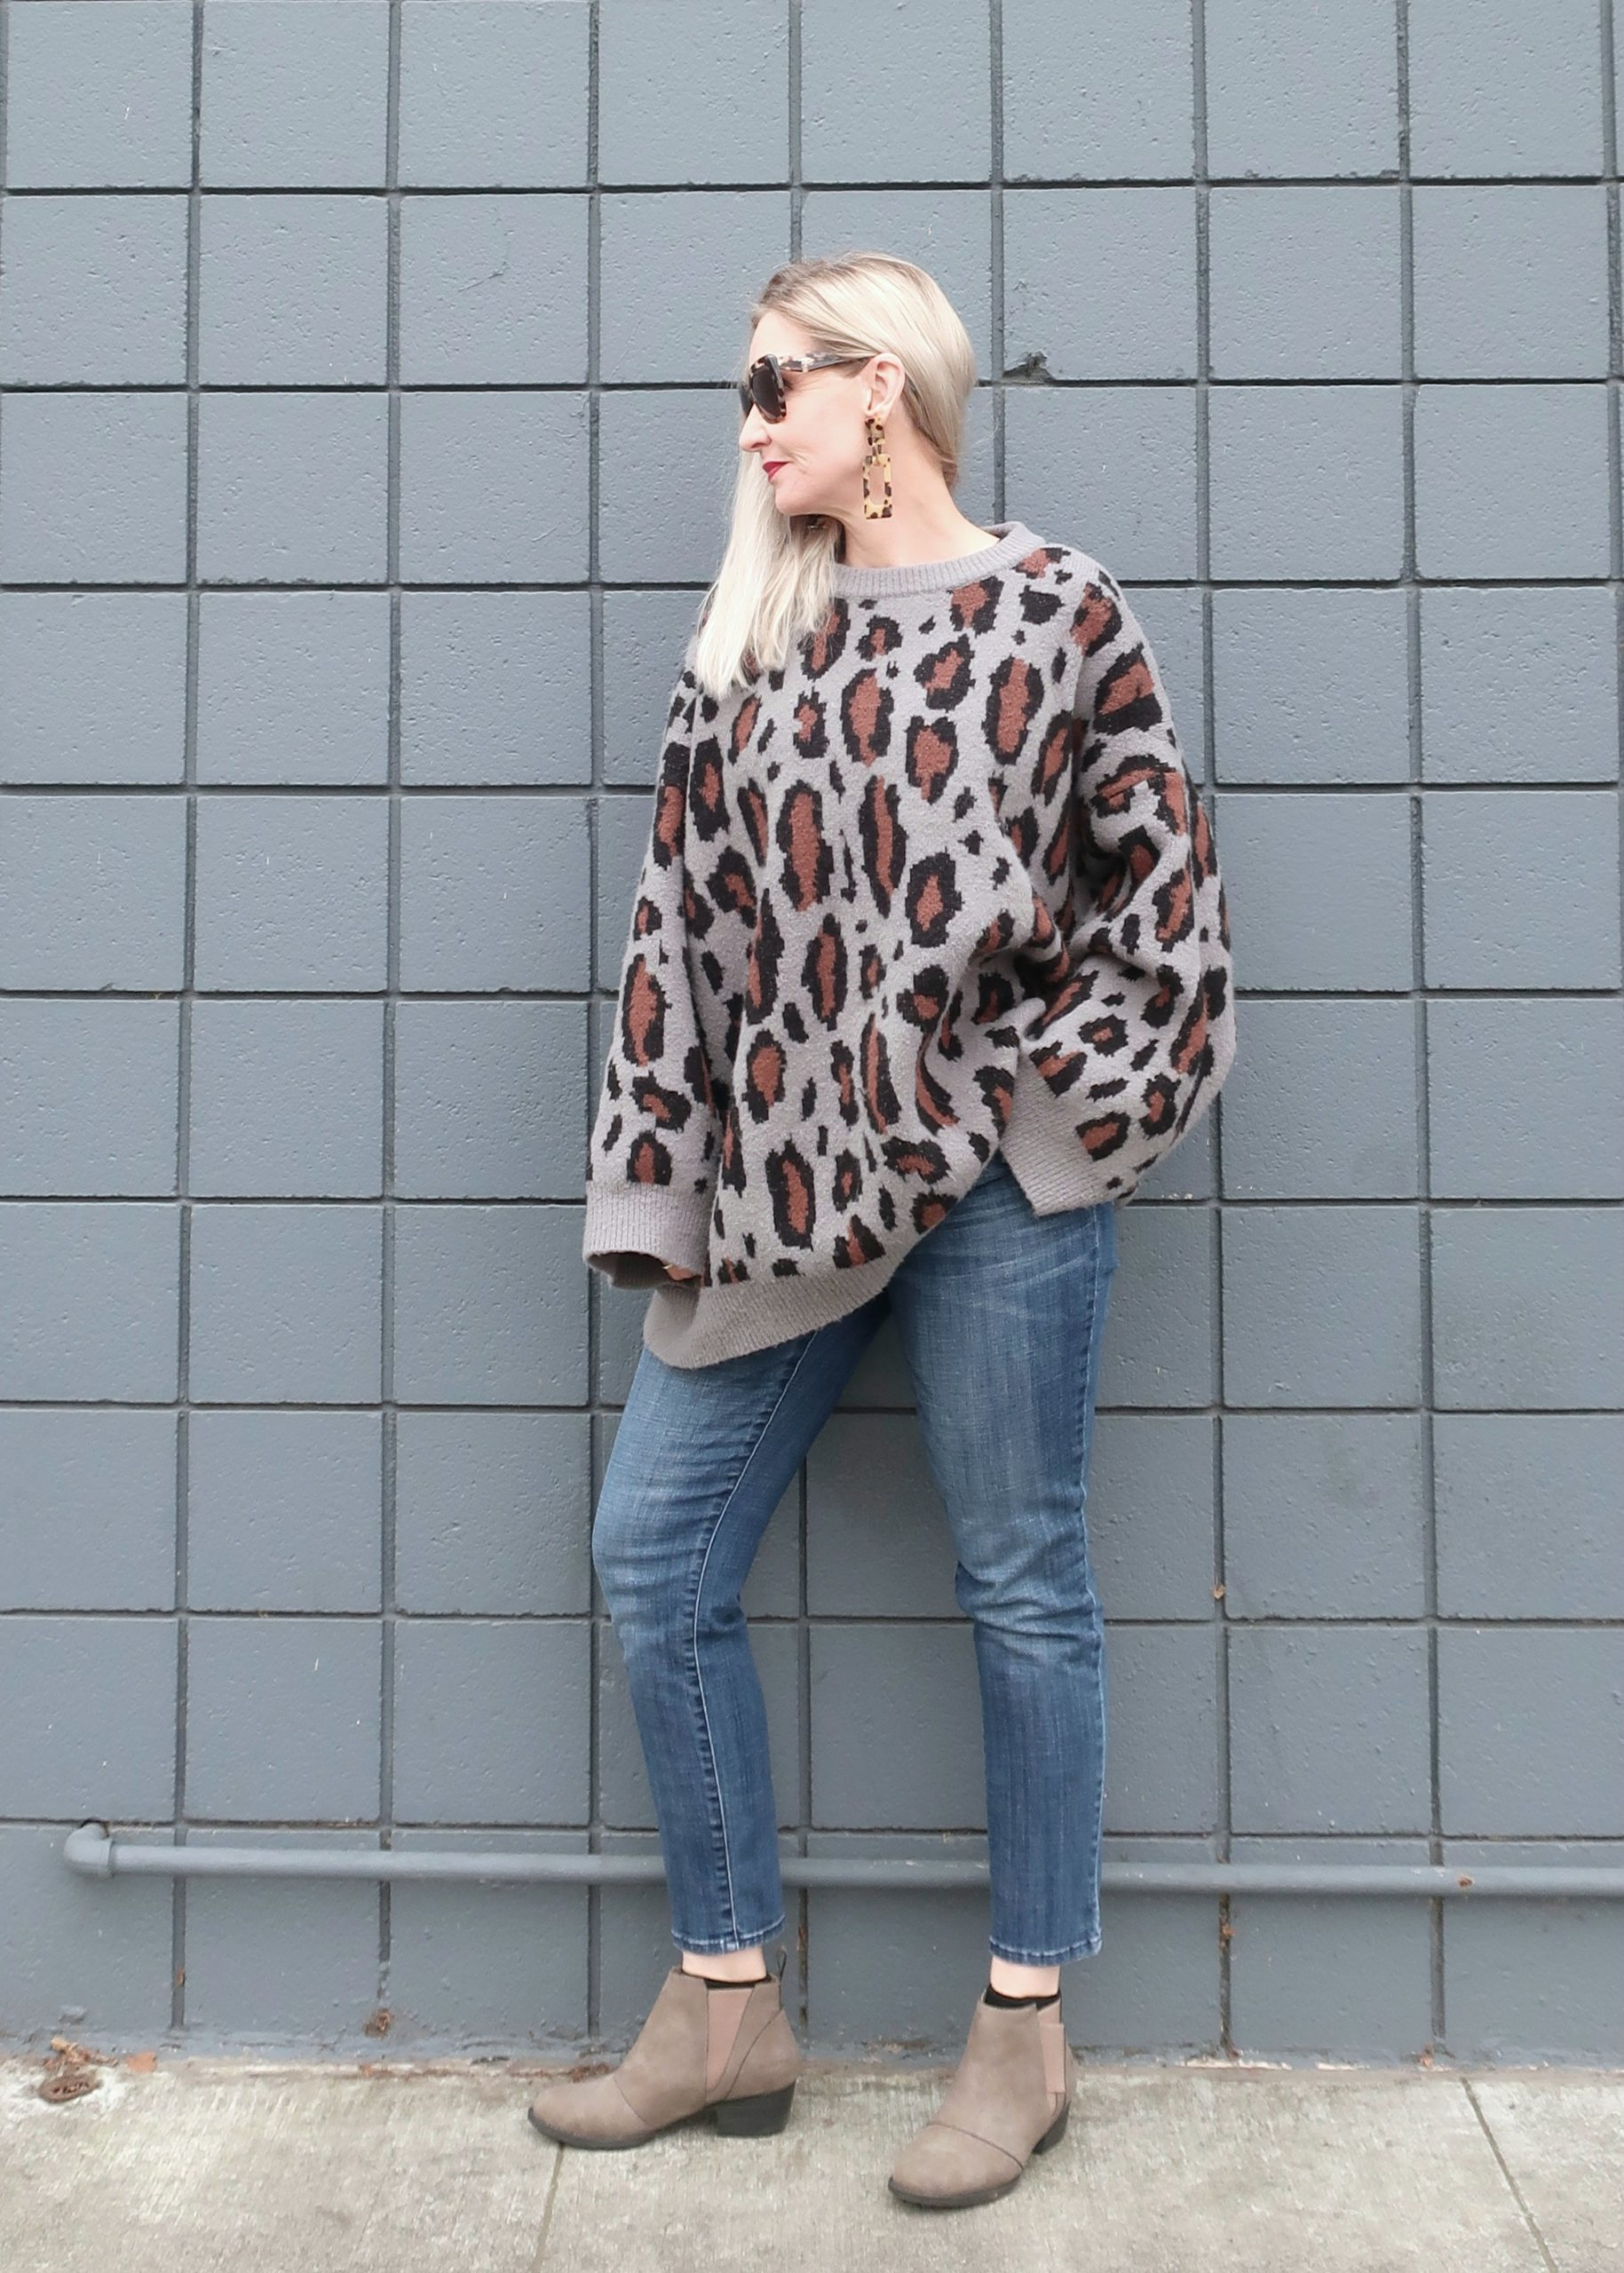 oversized leopard sweater for a weekend outfit